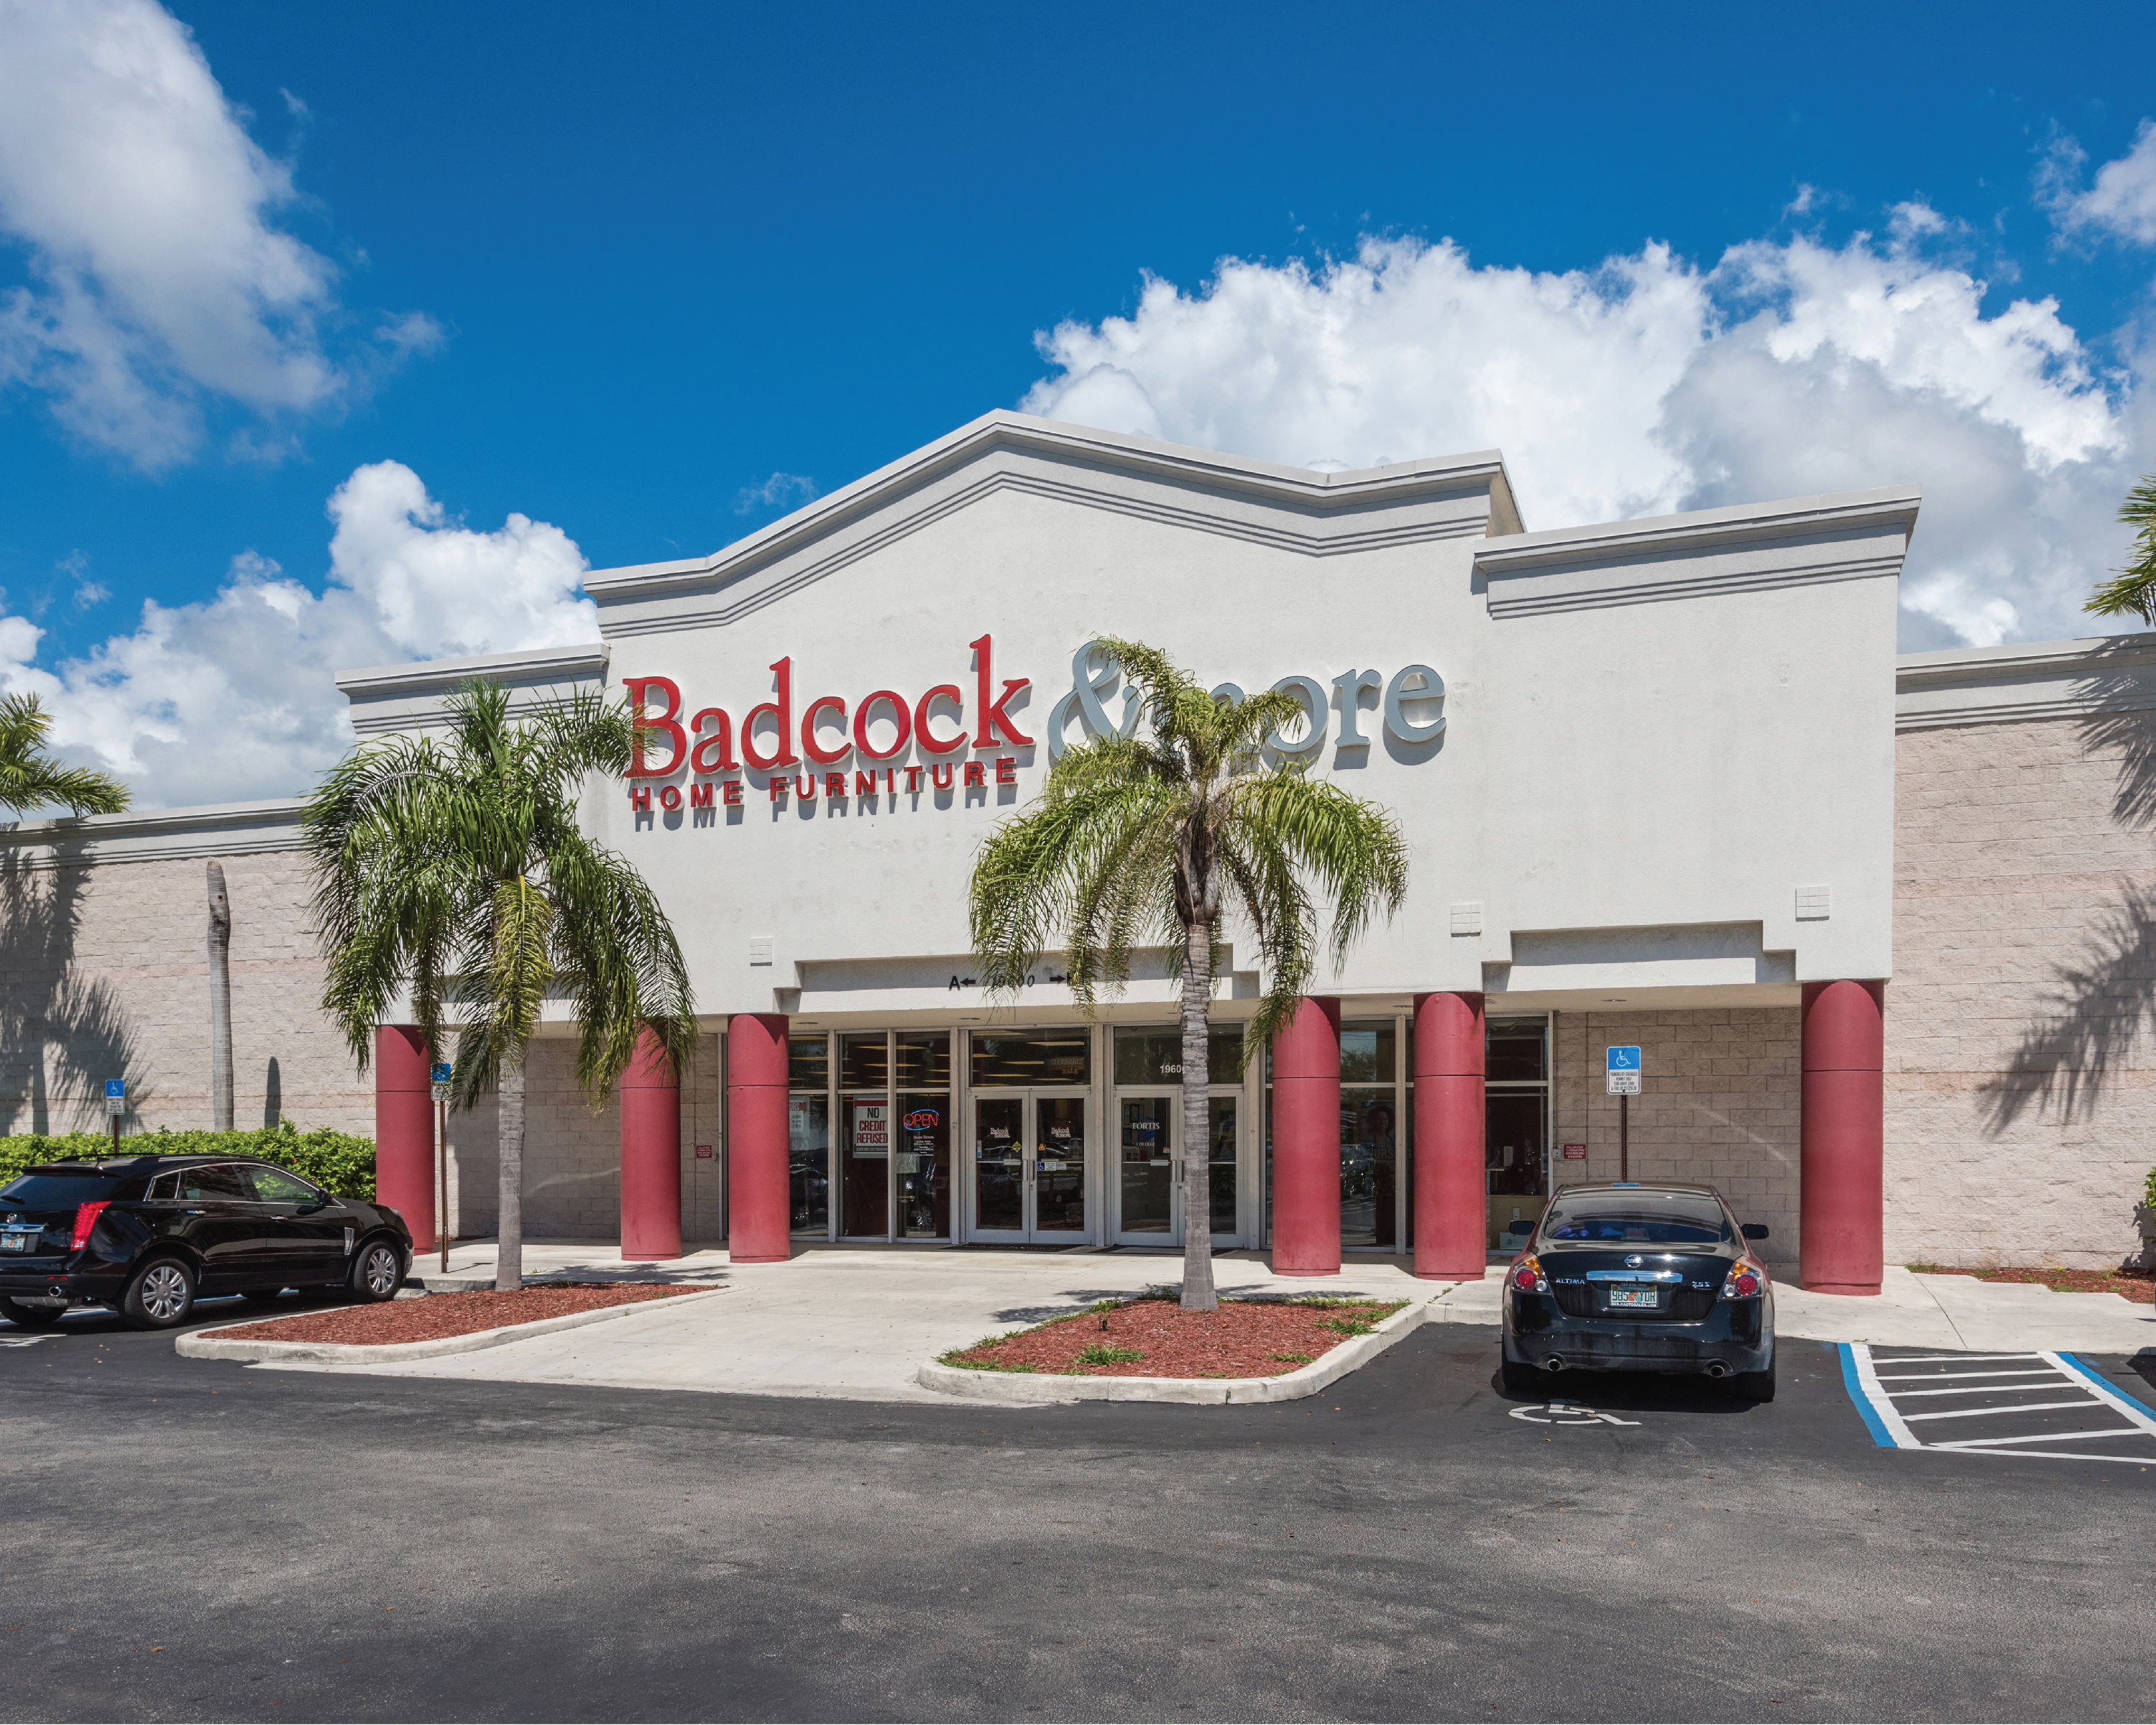 Badcock home furniture more miami gardens fl 33056 Badcock home furniture more corporate office